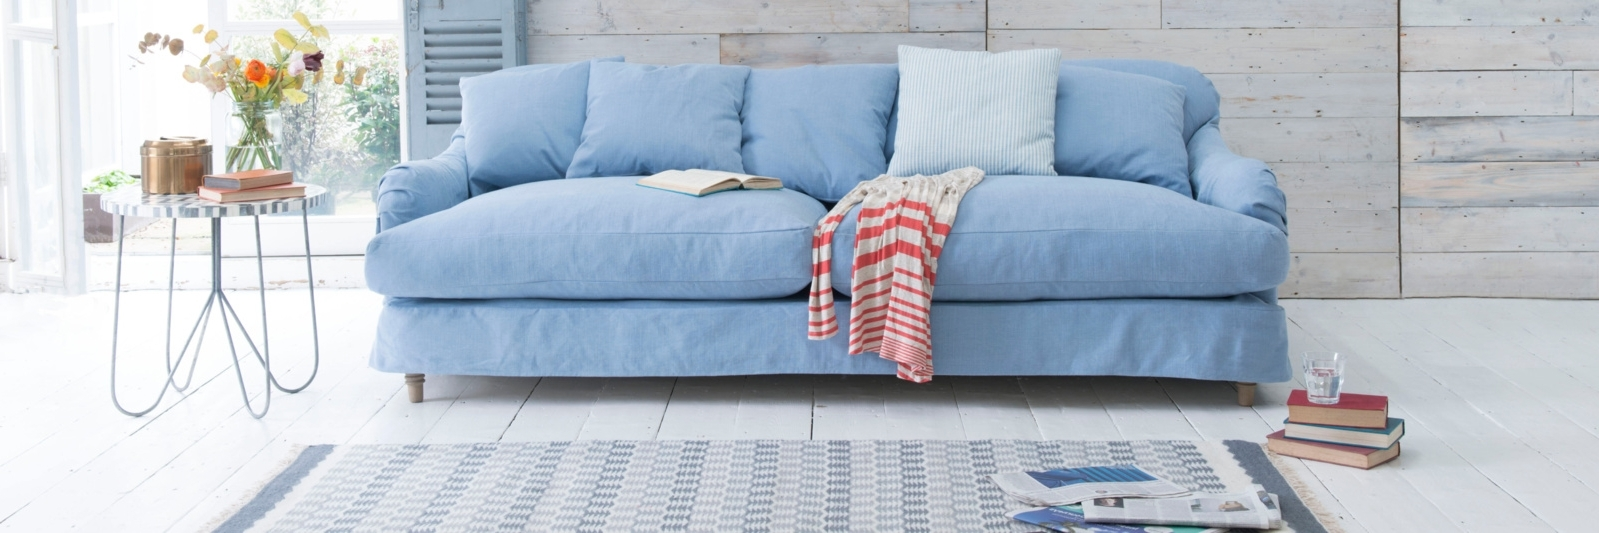 Well-liked Washable Slipcovered Sofas Machine Washable Sectional White inside Removable Covers Sectional Sofas